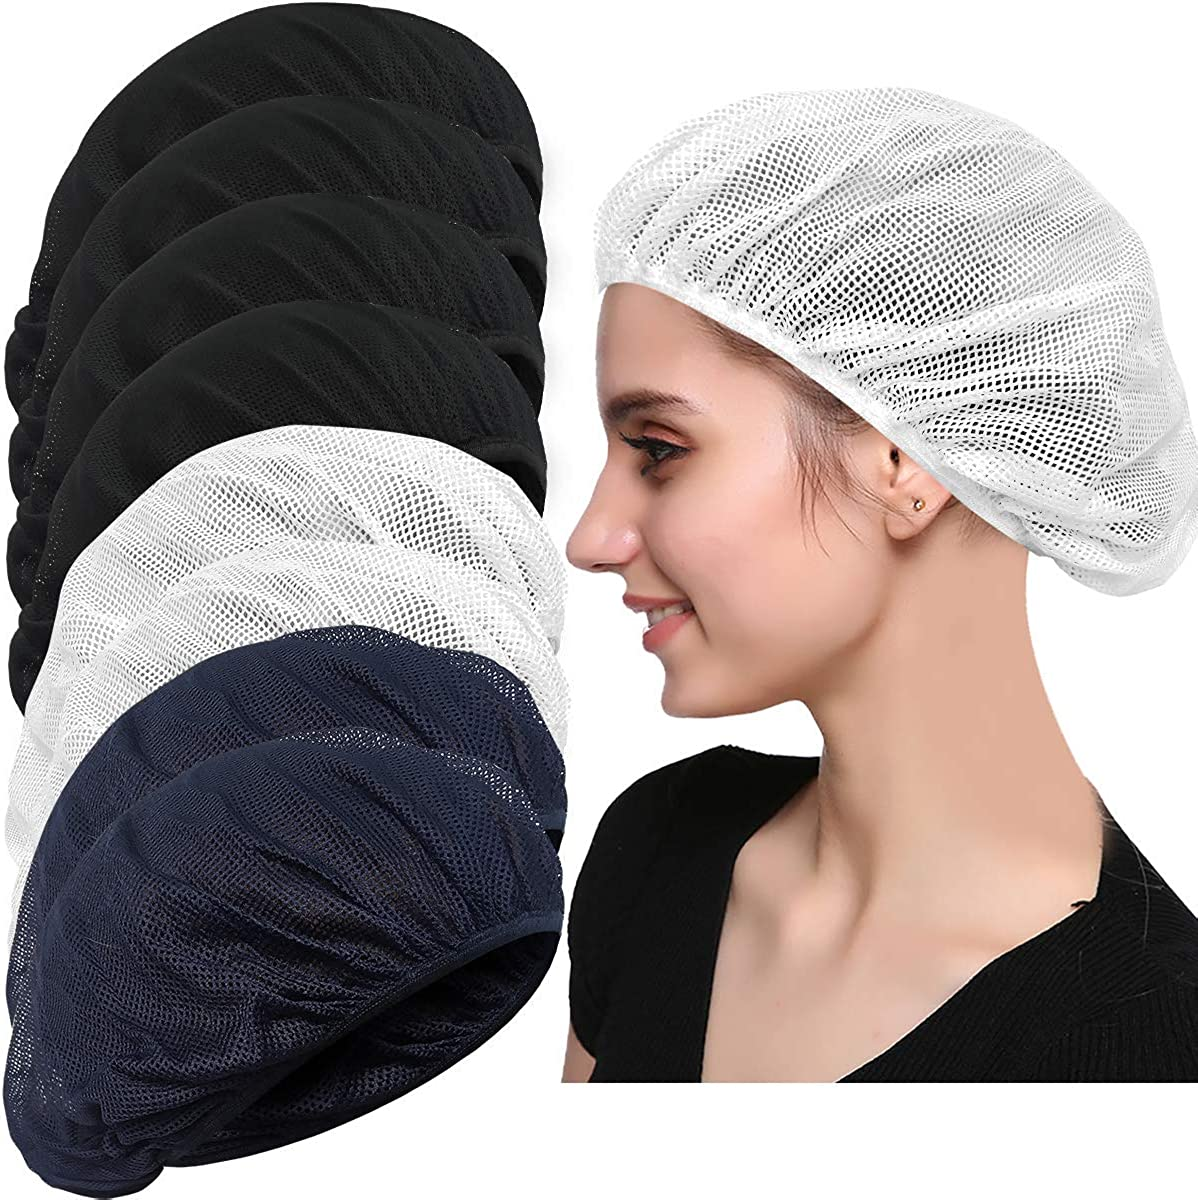 4 or 8 Pack Chef Hat Kitchen Cooking Chef Cap Adjustable Food Service Hair Nets Reusable Washable Mesh Bouffant Beanie